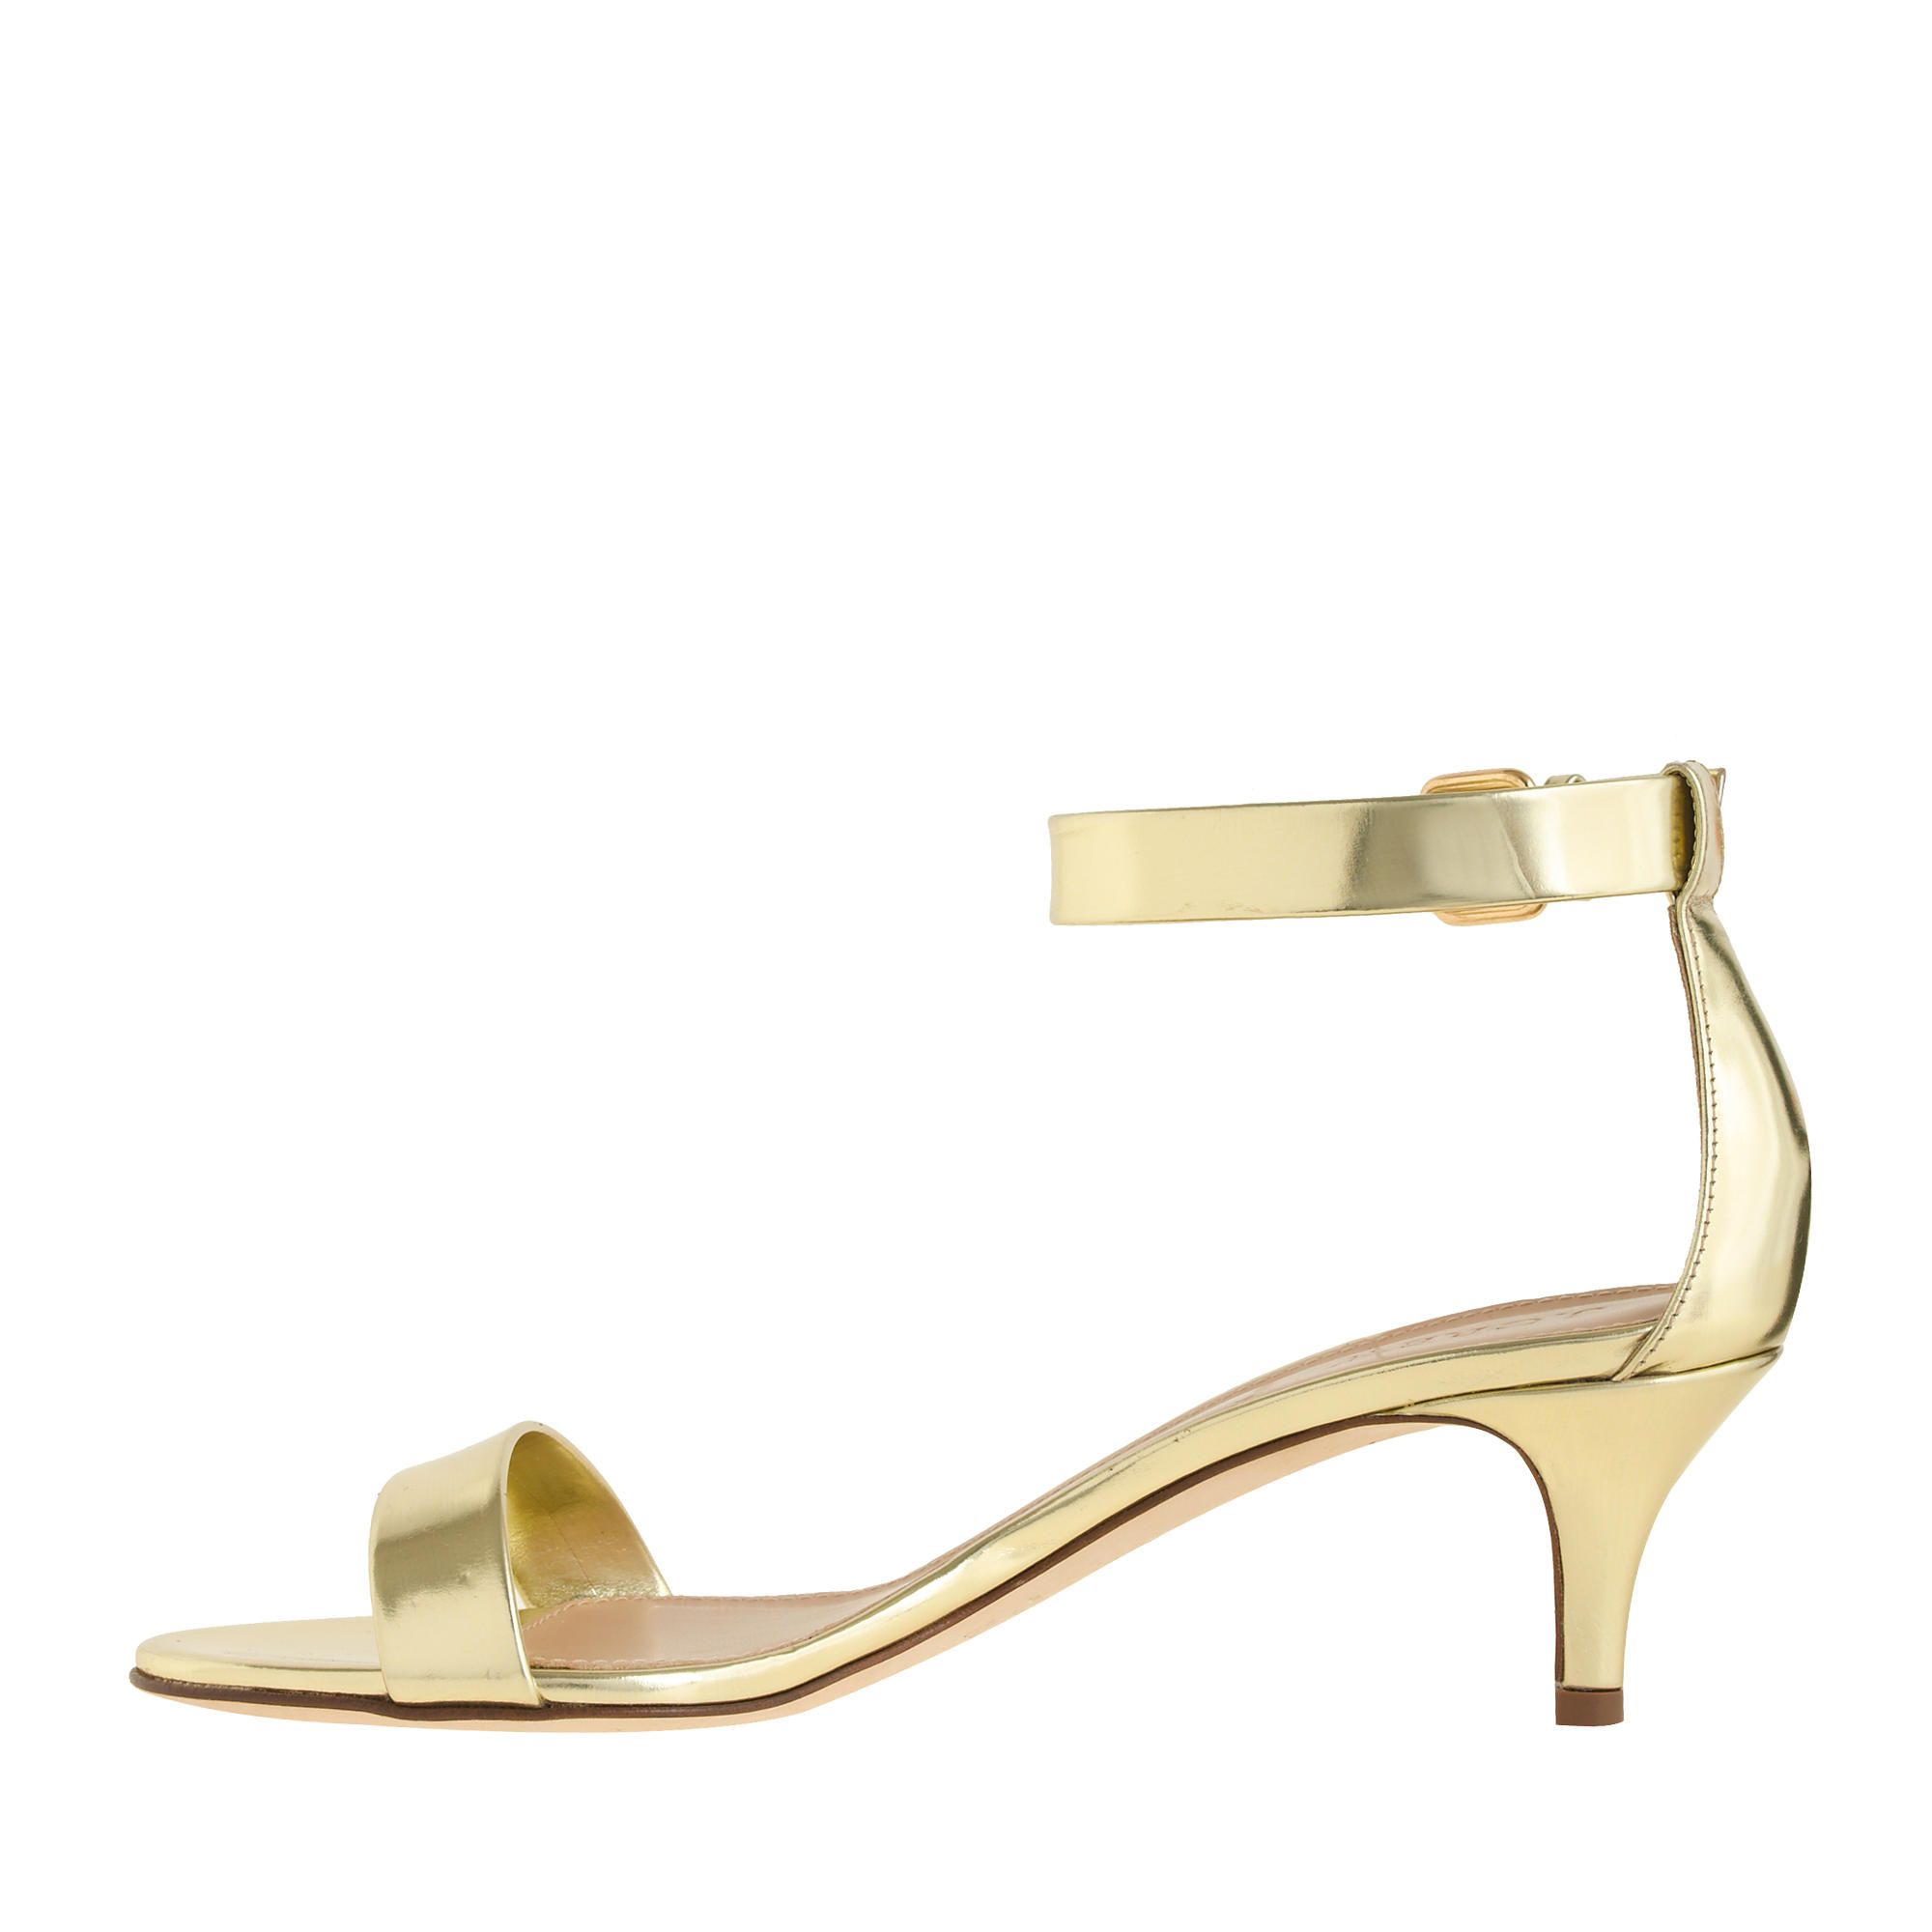 Fashion trend of Gold Kitten Heel Sandals - Is Heel | fashion ...